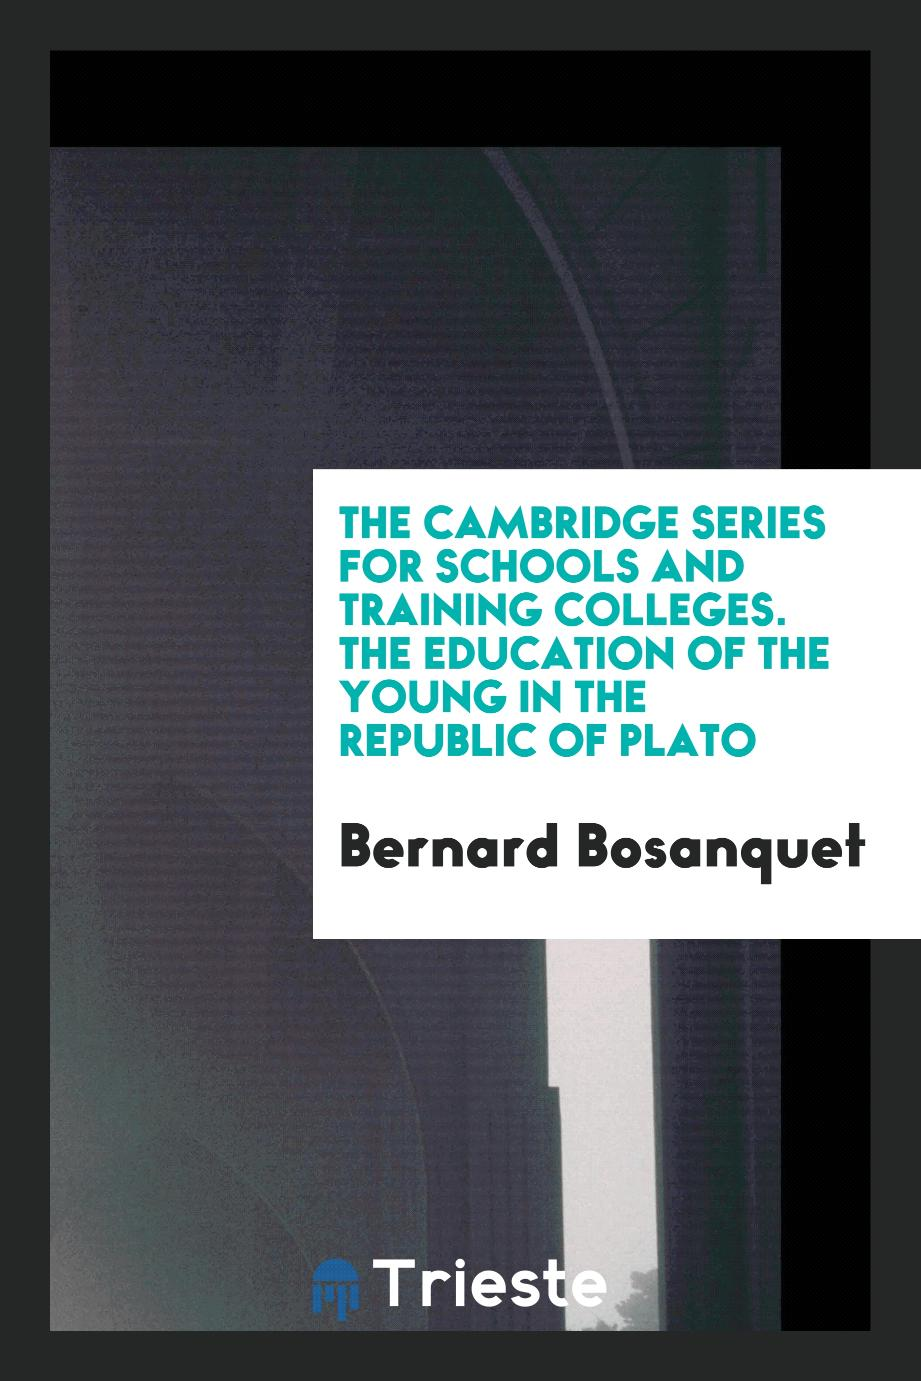 The Cambridge Series for Schools and Training Colleges. The Education of the Young in the Republic of Plato